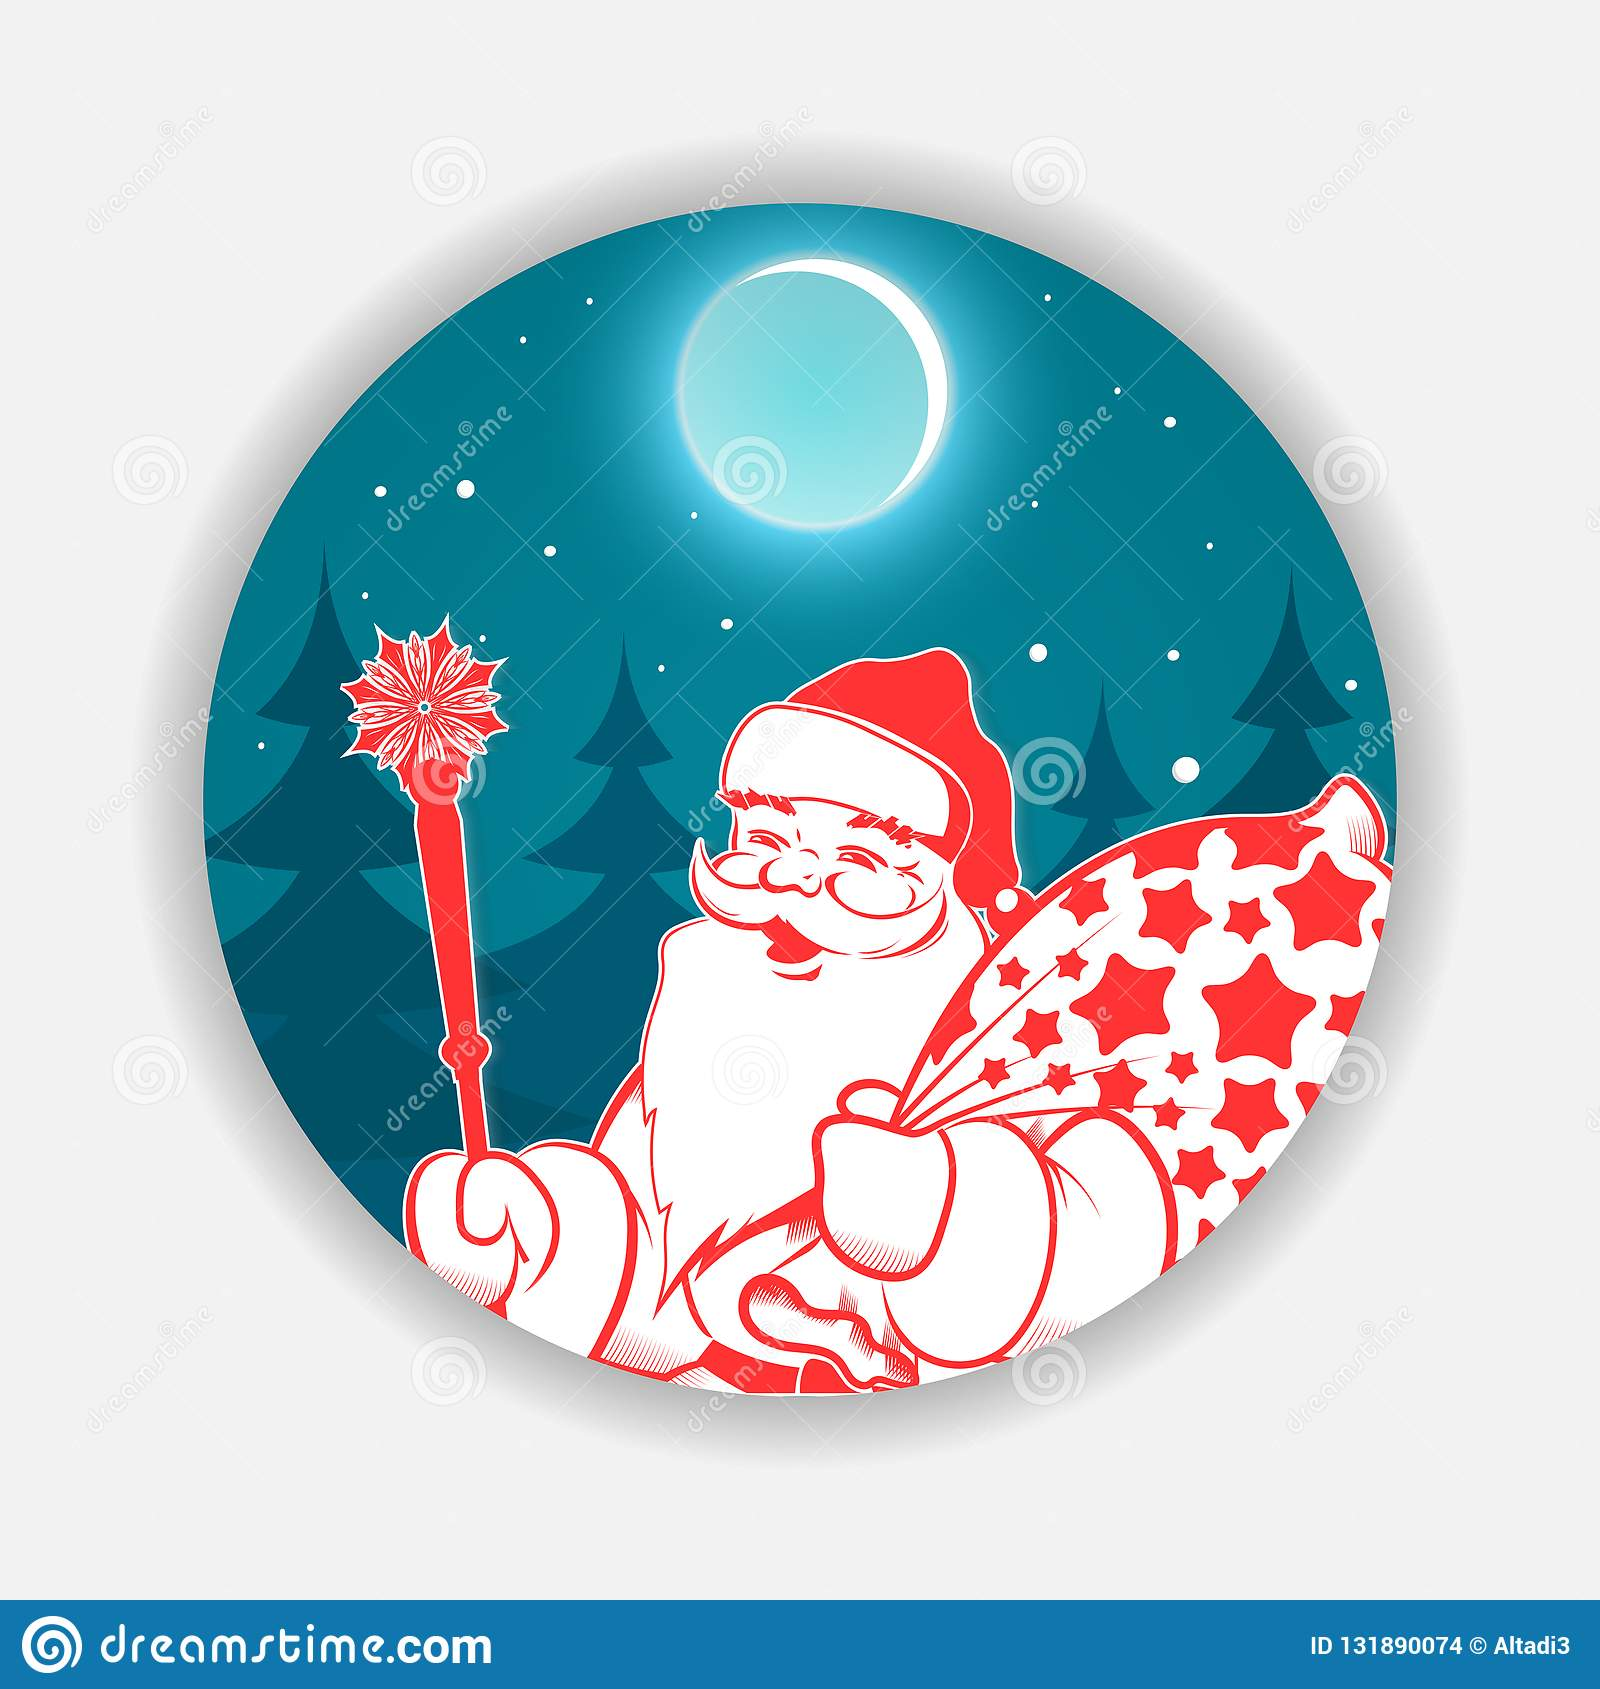 Christmas blue round sign with a pattern of Santa Claus with a staff and a bag. Design element stock images